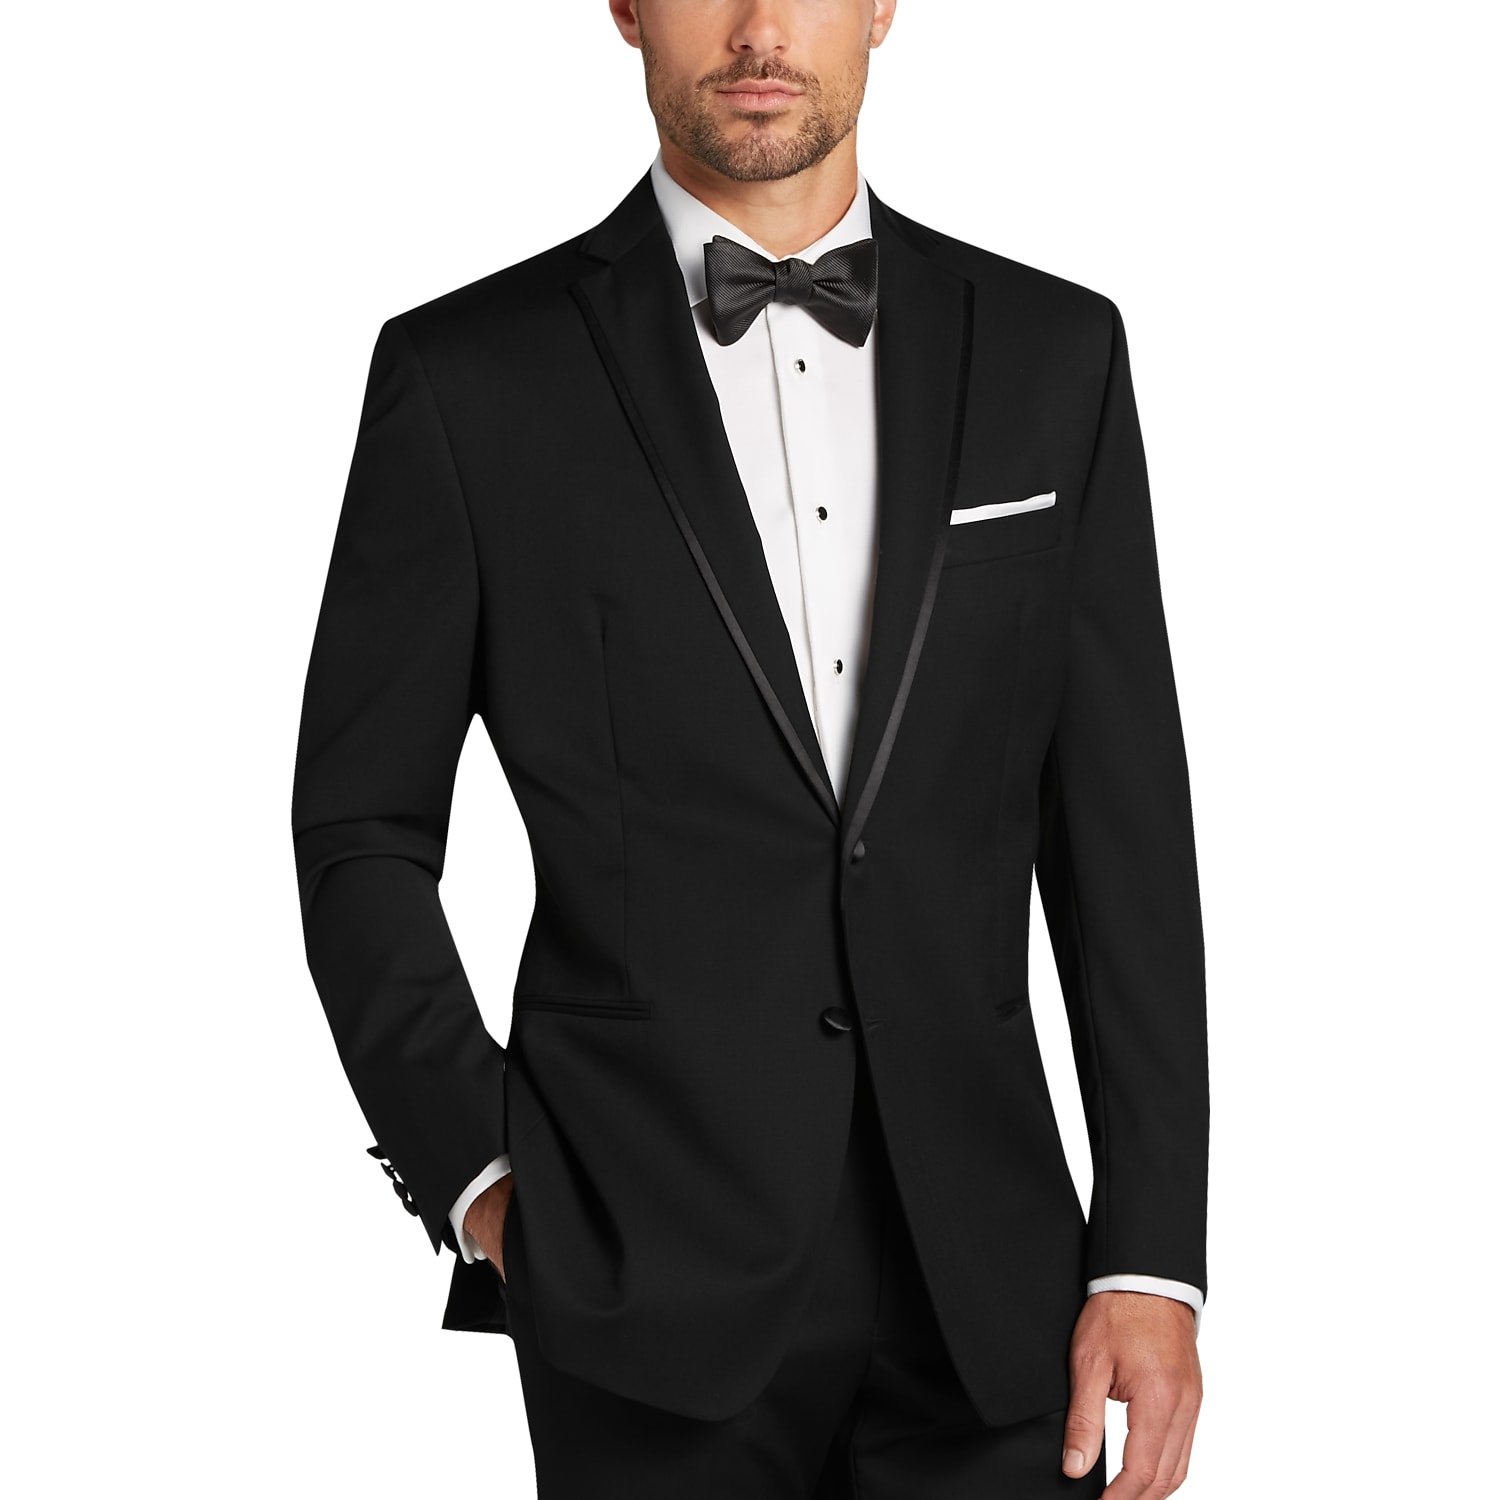 04d64fb7a33 Calvin Klein - Men s Suits